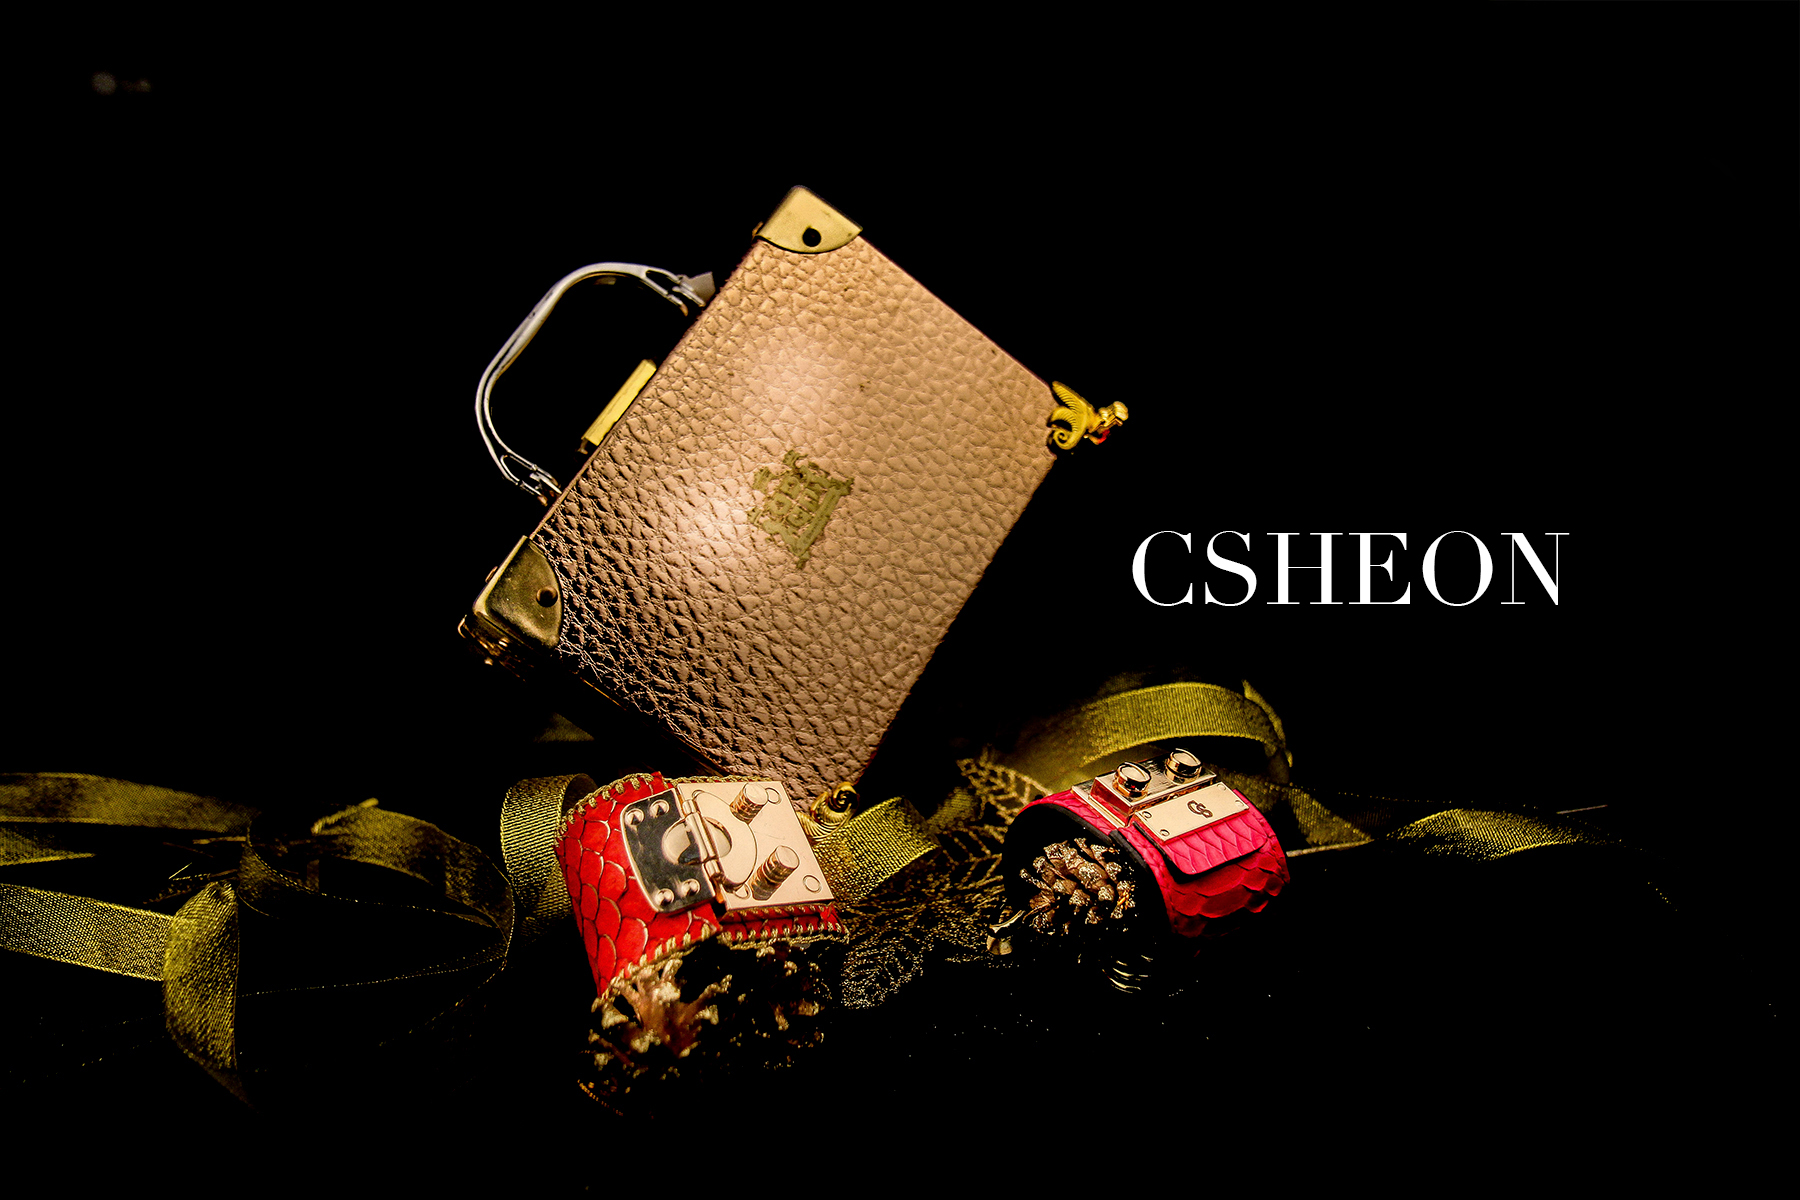 CSHEON Leather Bangles and Cuff Bracelet | Custom Made Gold Buckle